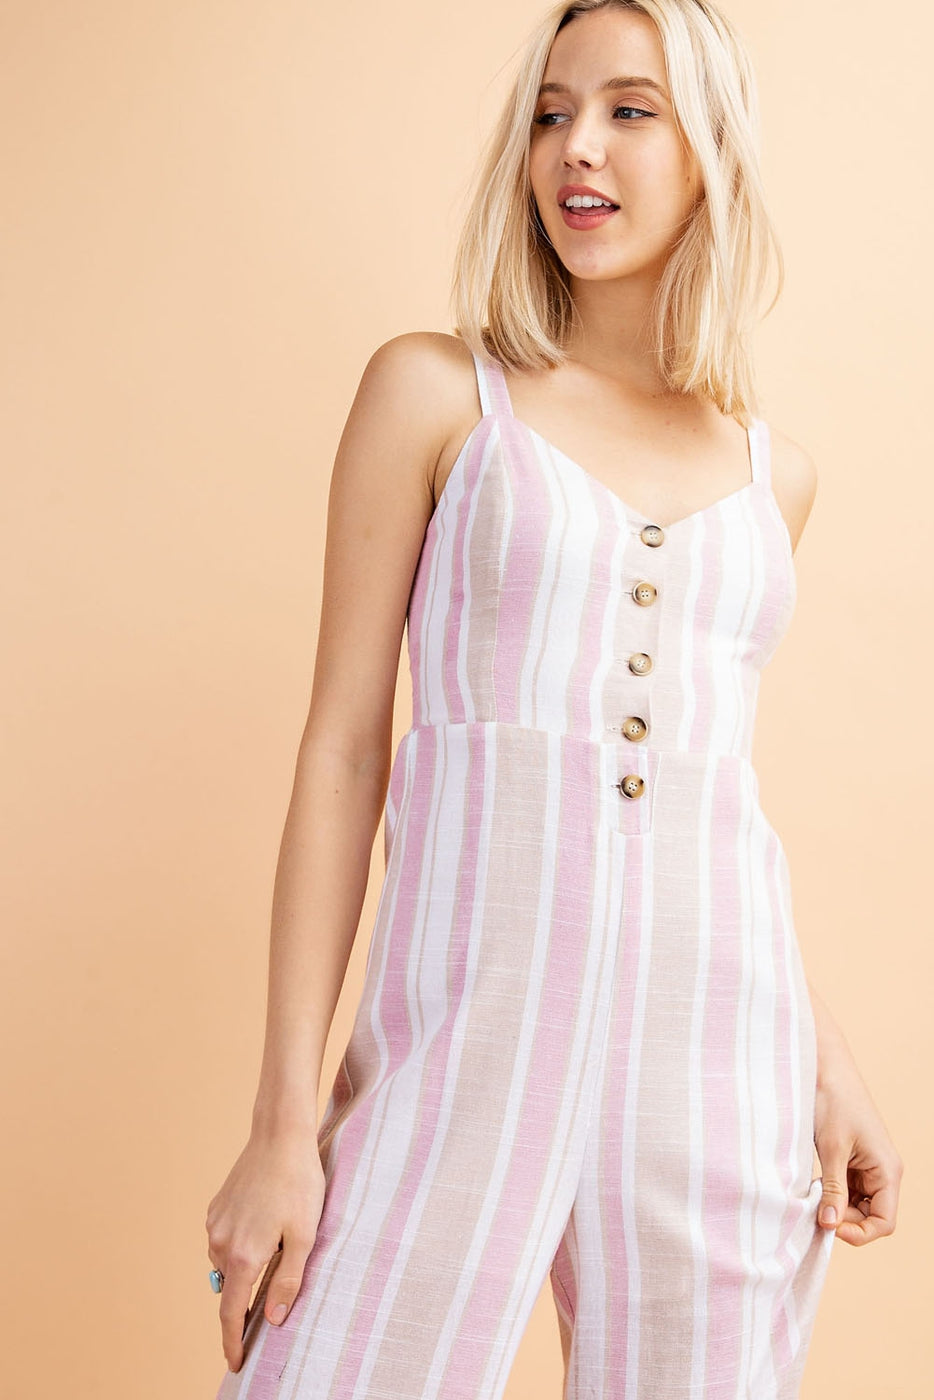 V-Neck Back Tie Stripe Jumpsuit With Front Buttons In White-Rose-Taupe Siin Bees